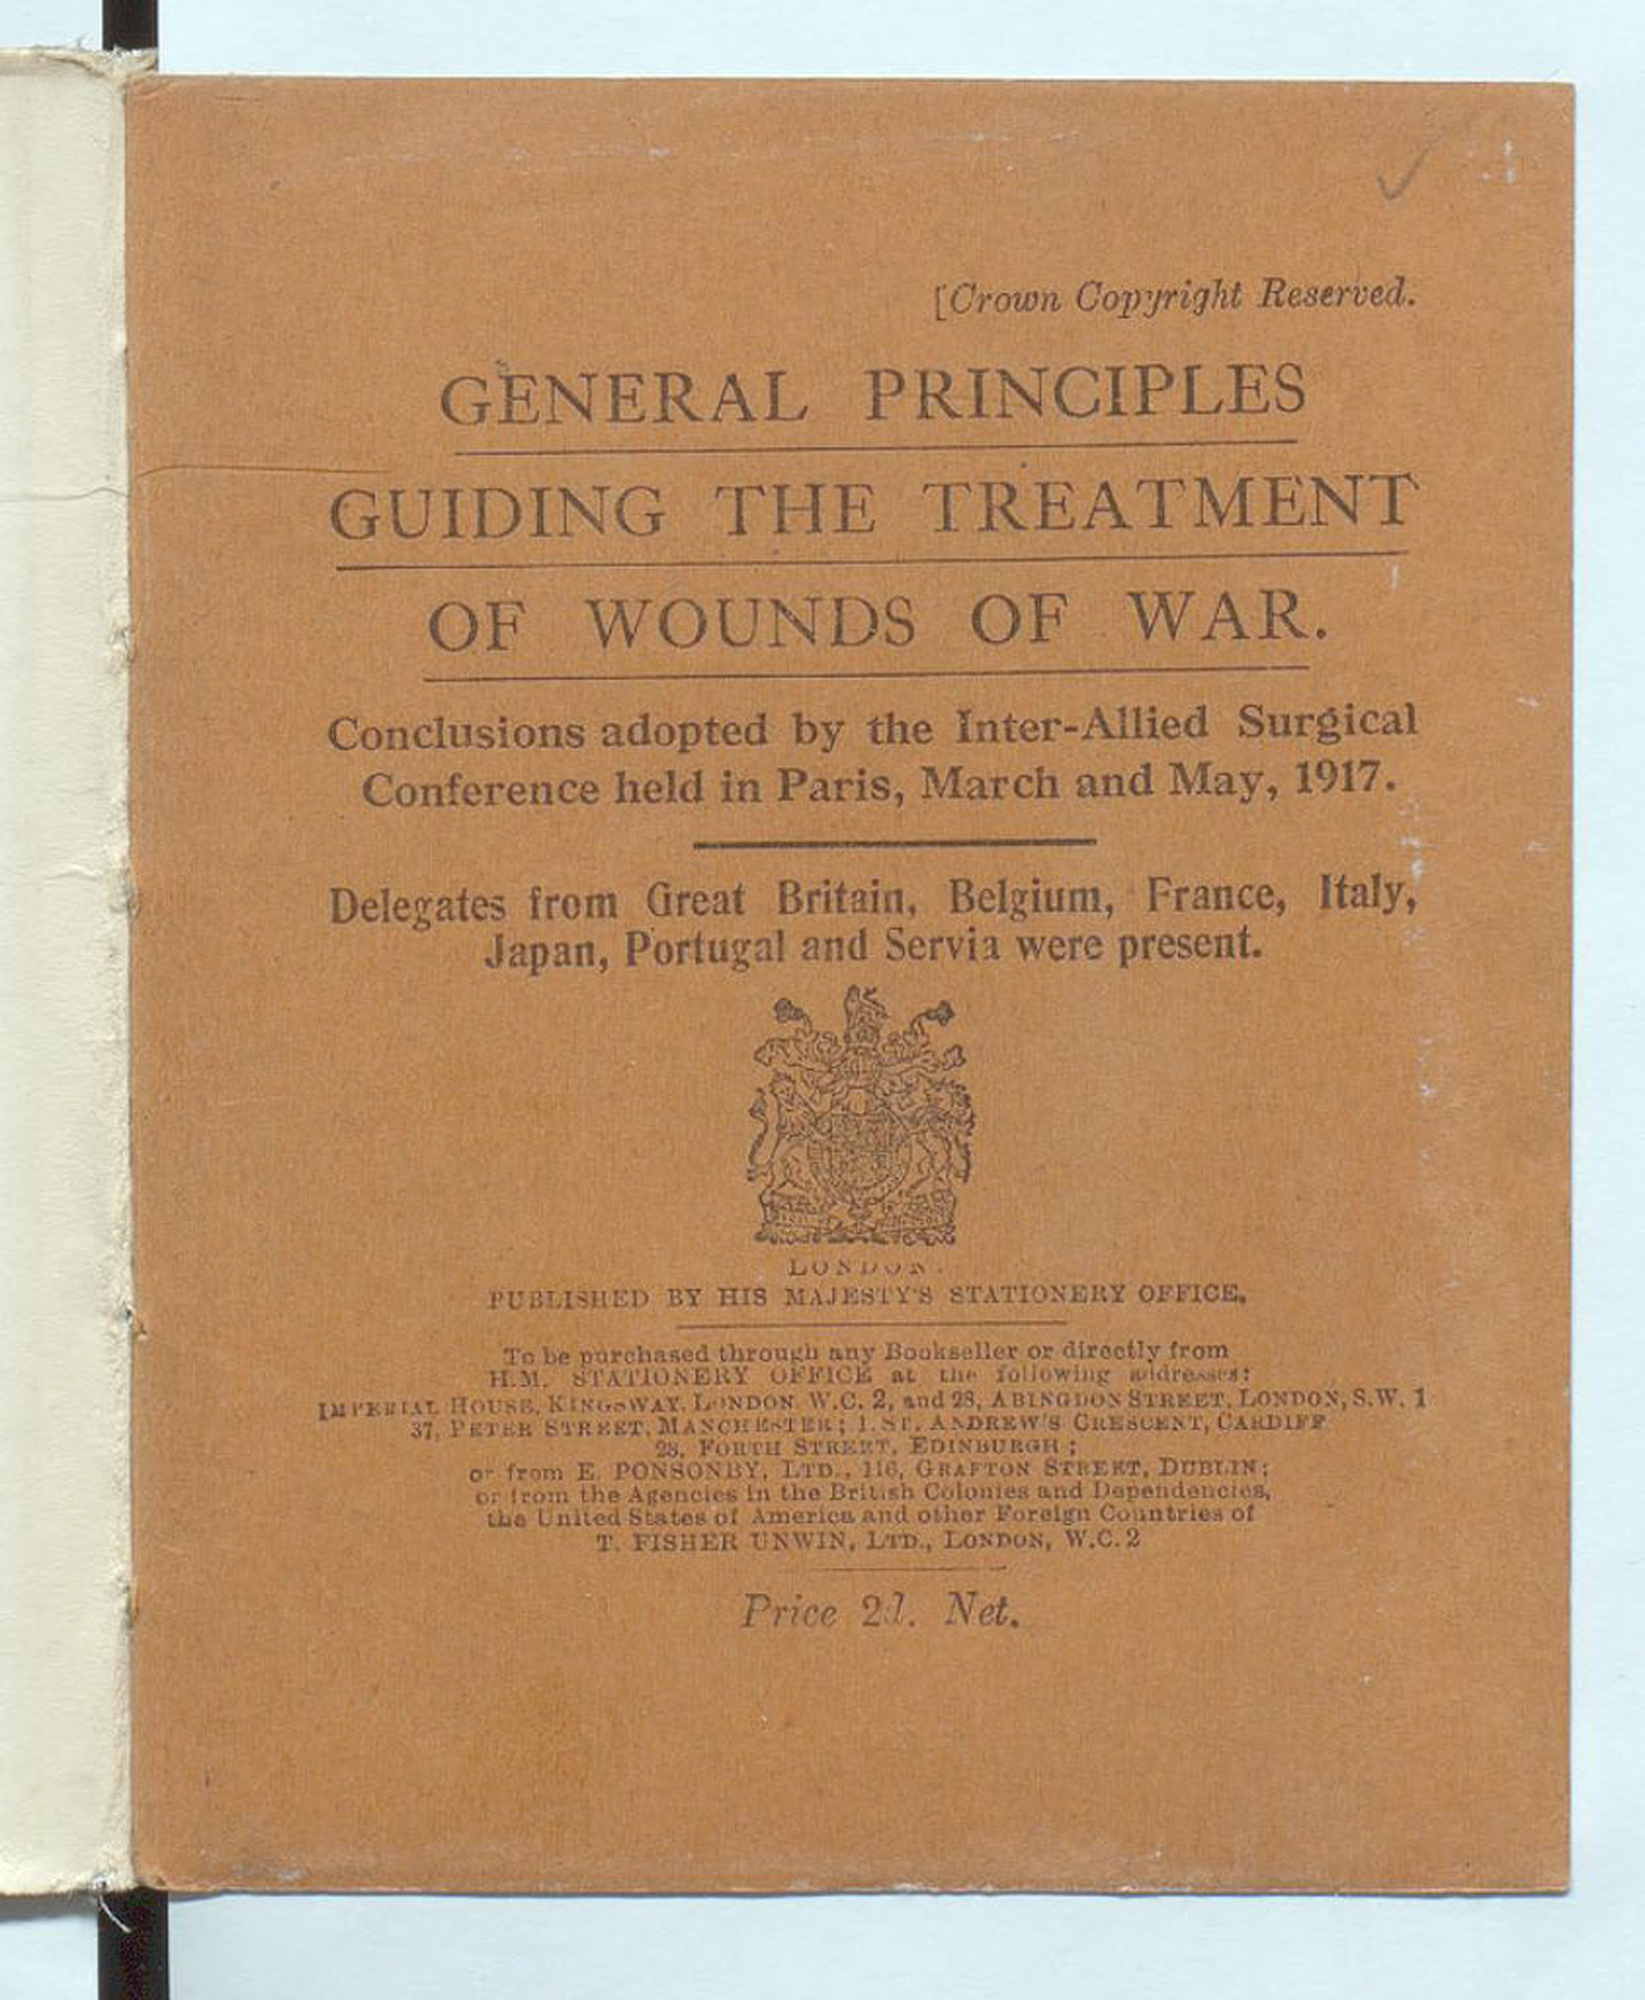 Guiding principles for the treatment of wounds of war